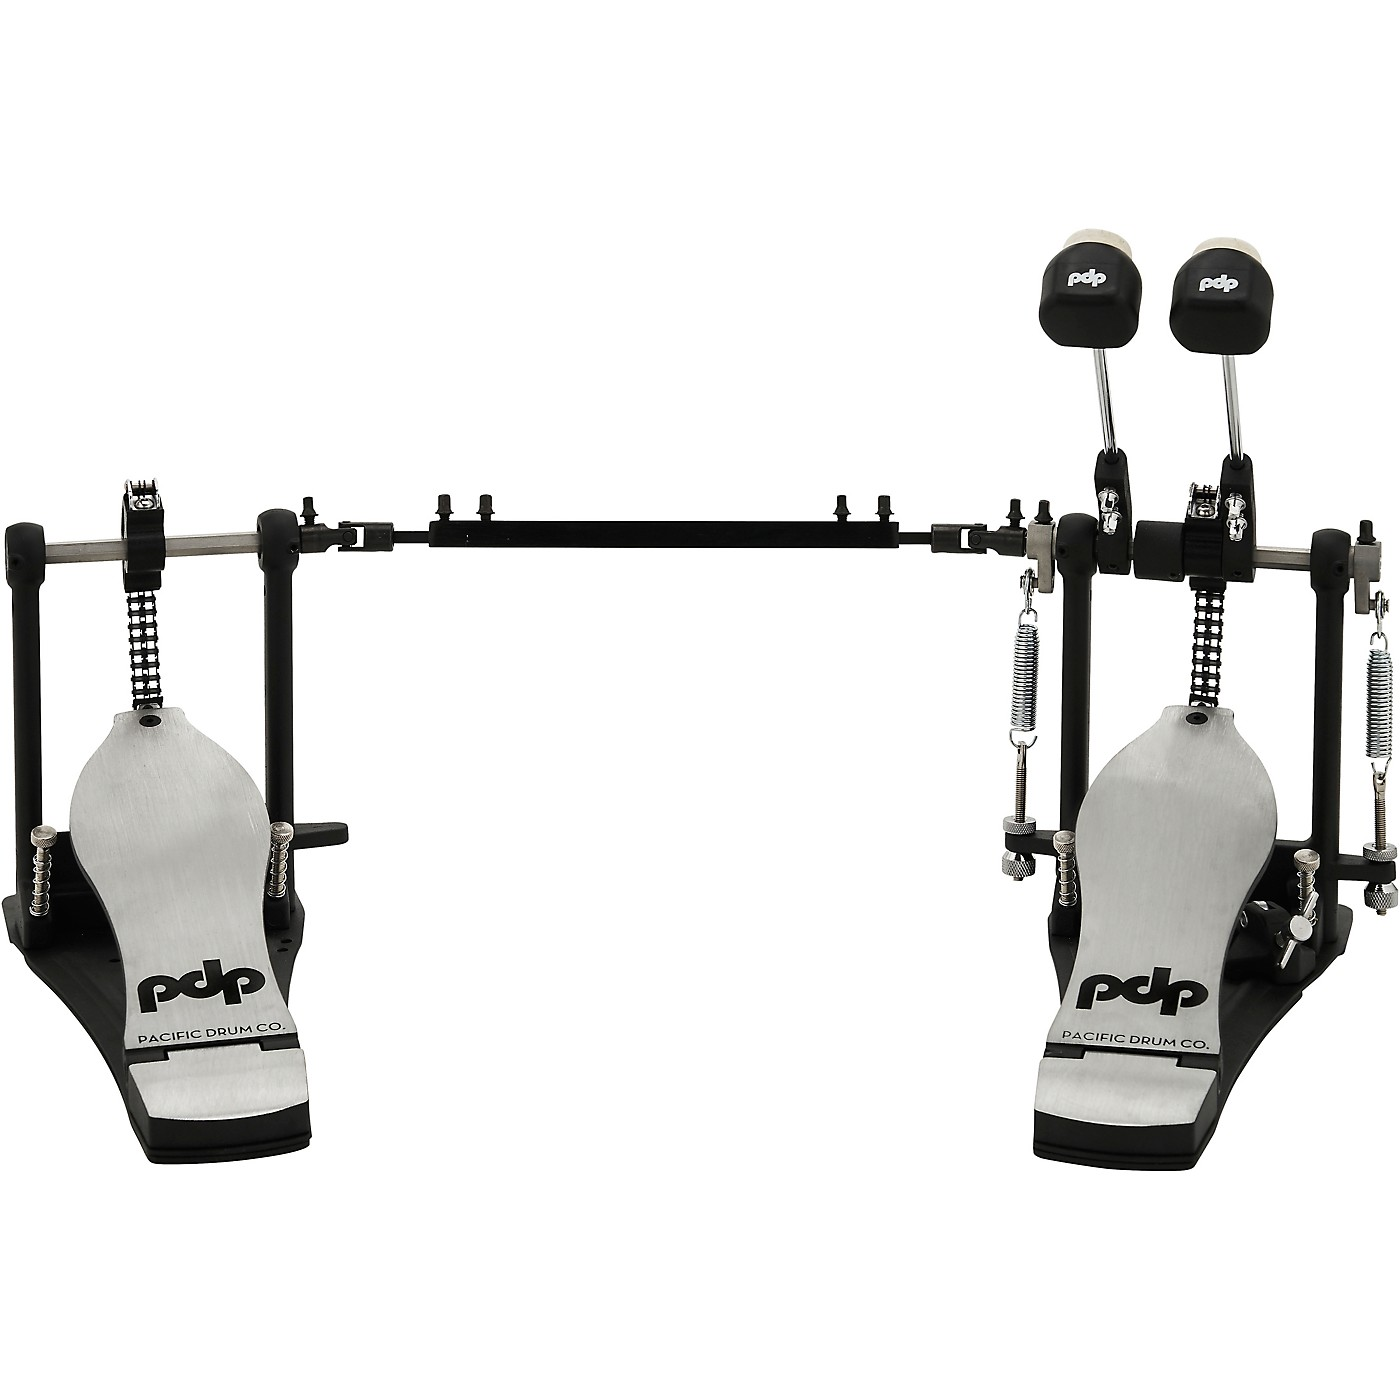 PDP by DW 800 Series Double Pedal with Dual Chain thumbnail